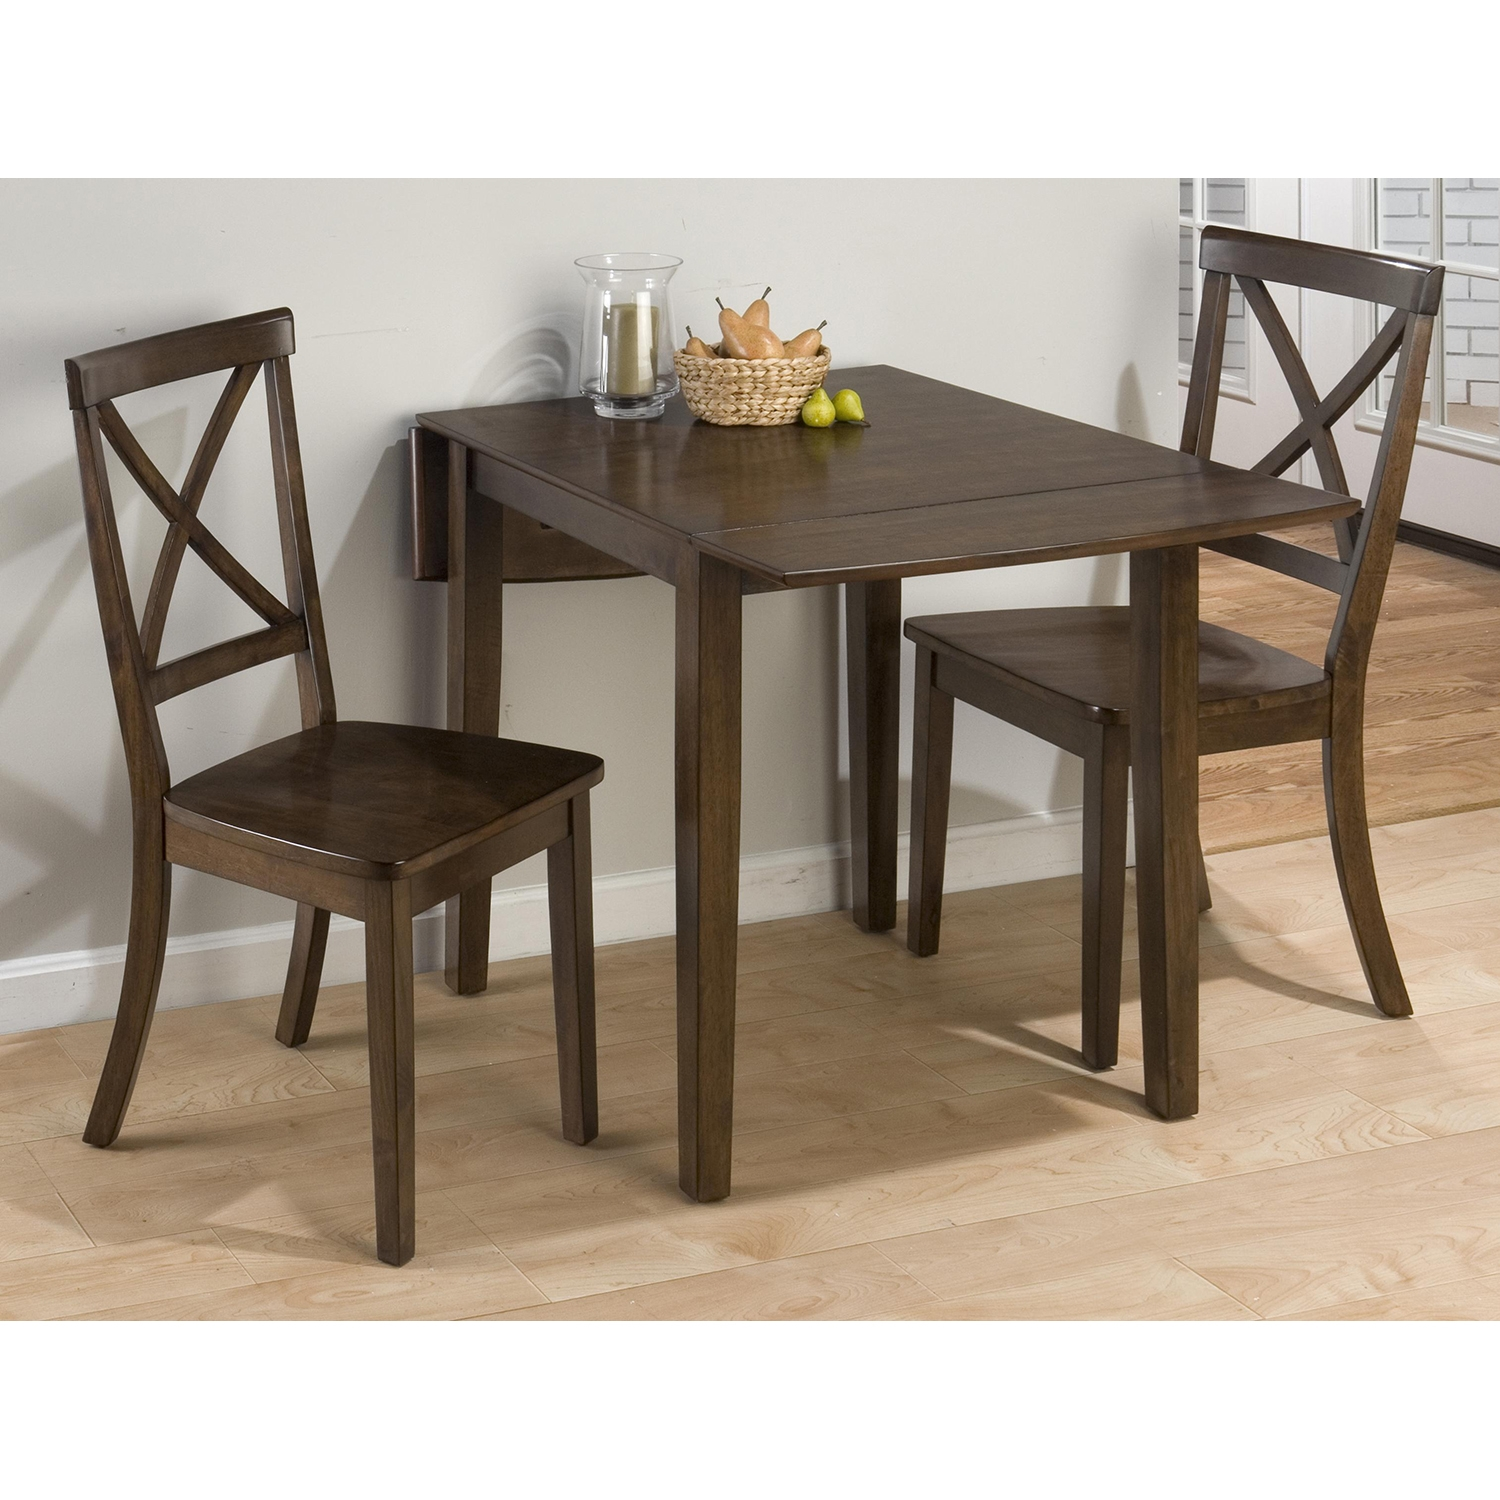 Richmond 3 Pieces Dining Set - Cherry - JOFR-342-48-915KD-SET